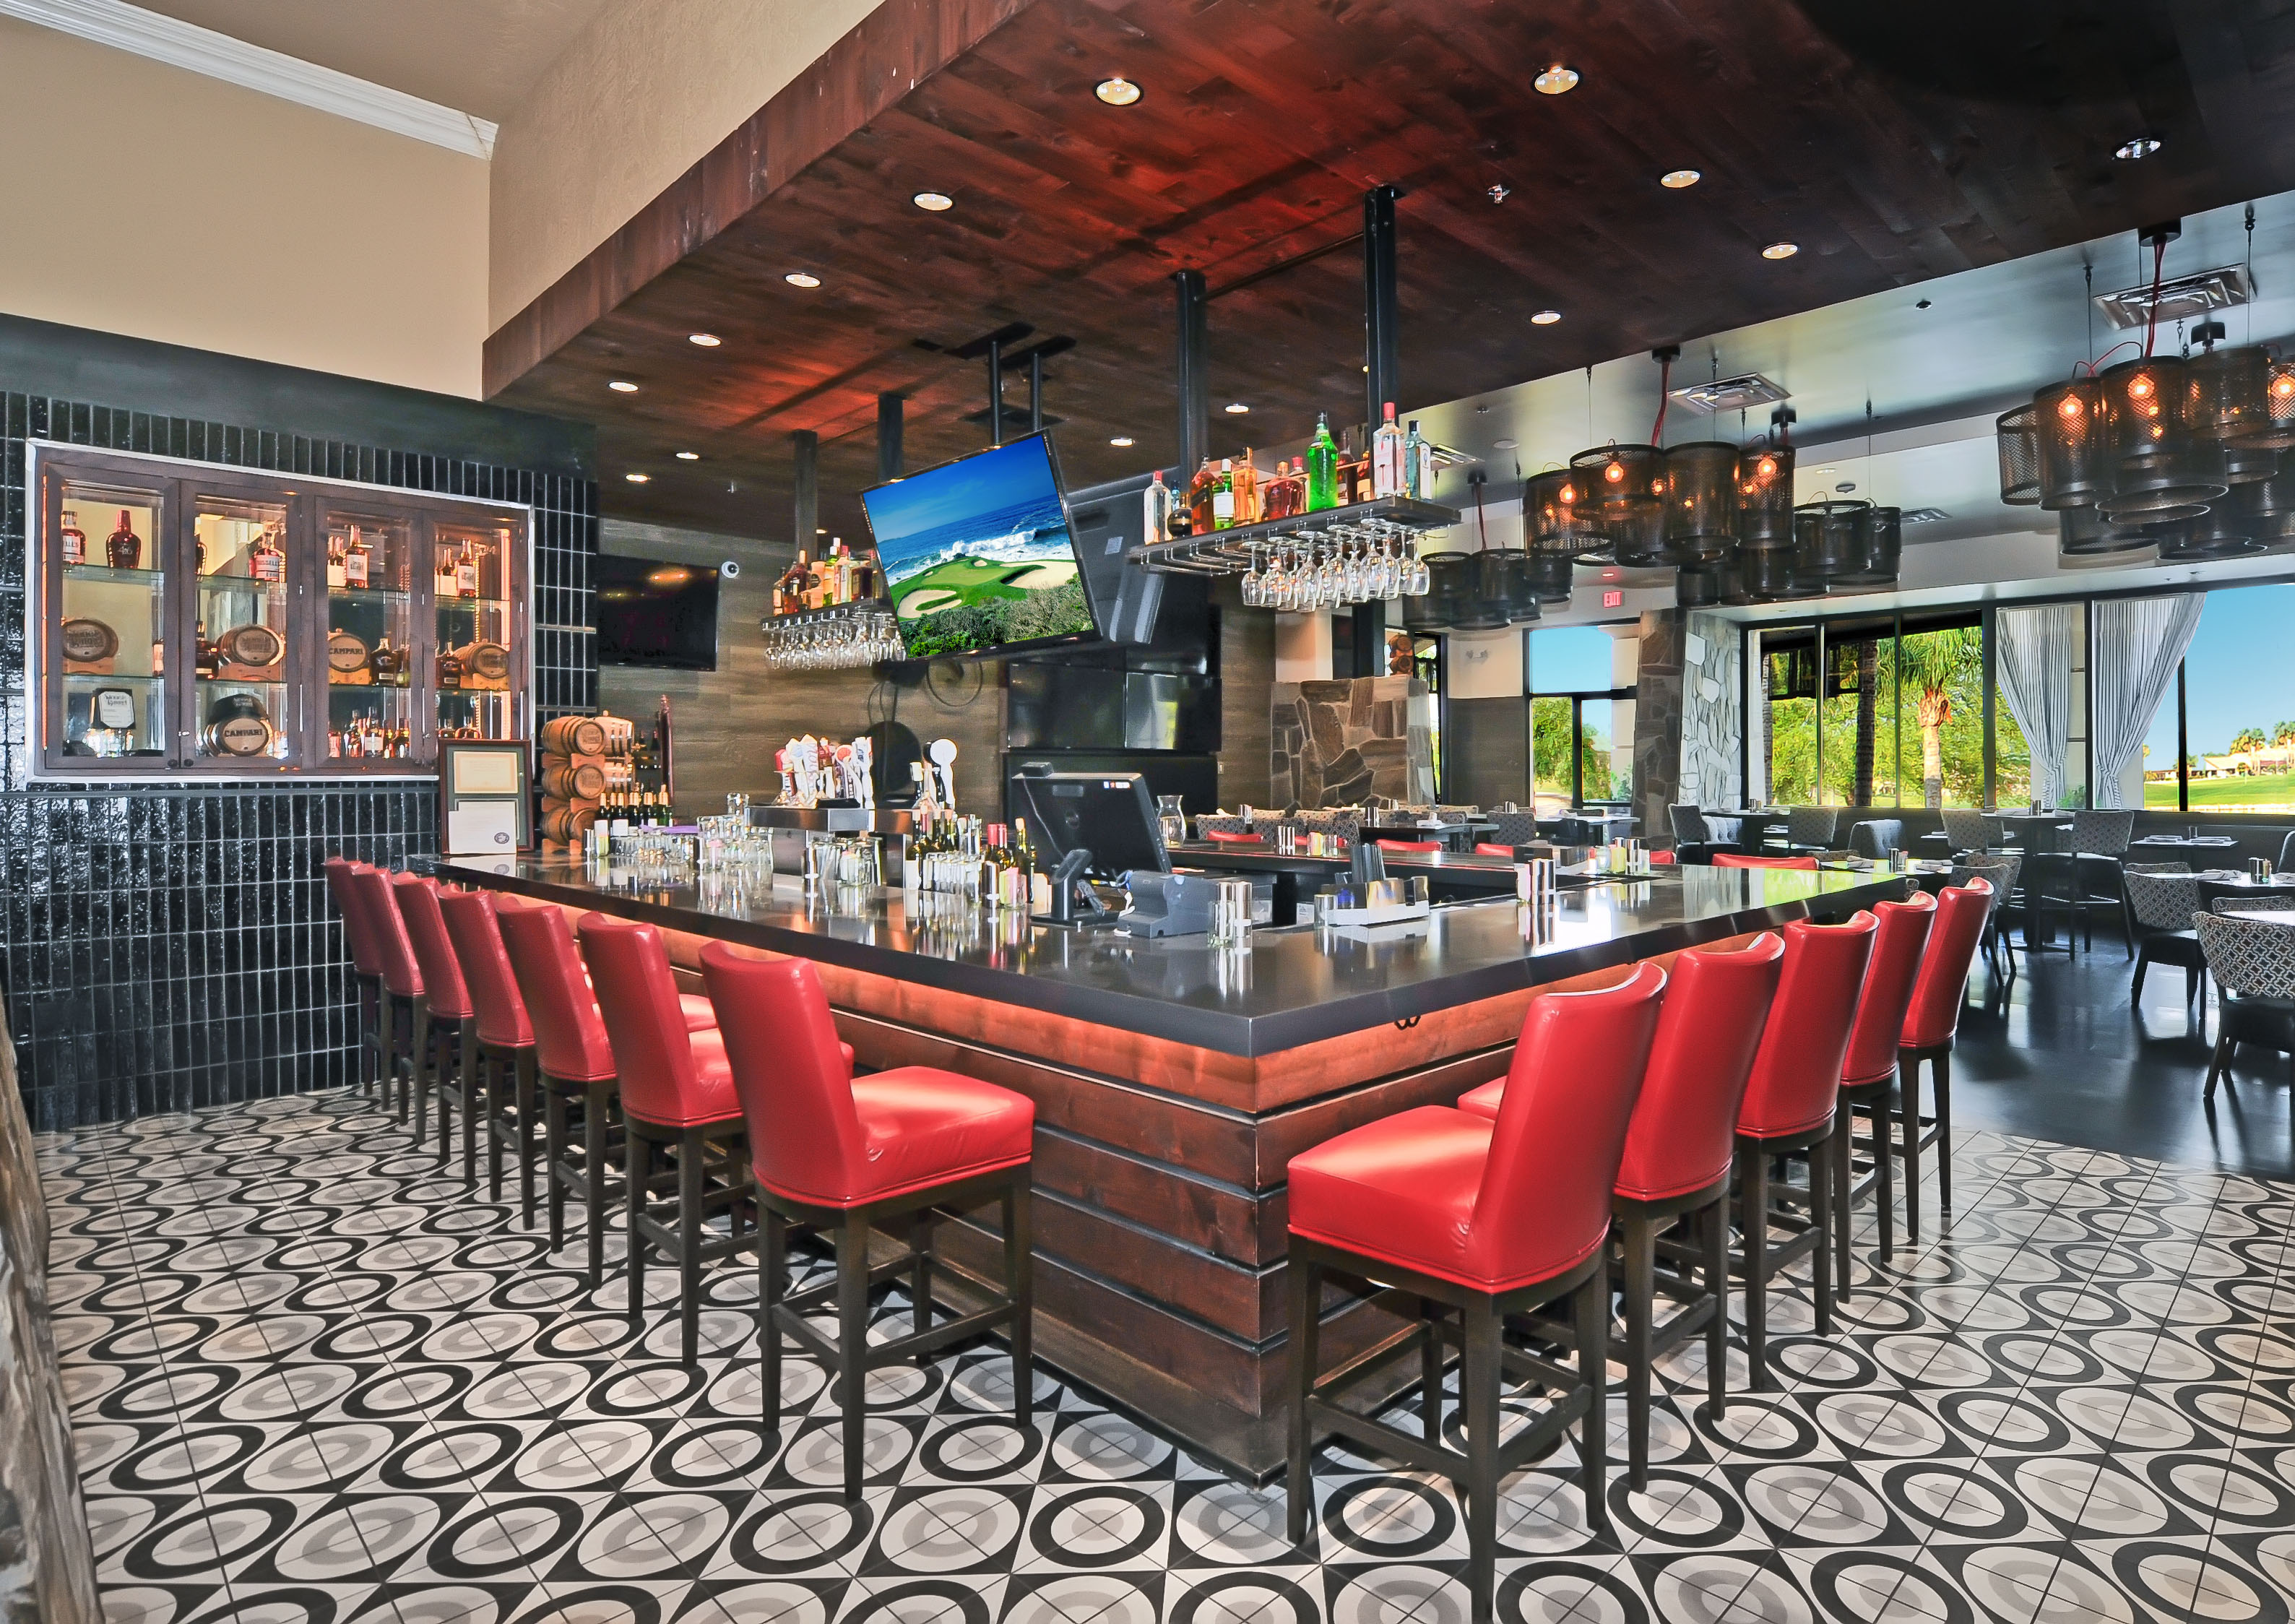 Stone and Barrel are on the list of the top 5 restaurants near Sun Lakes A